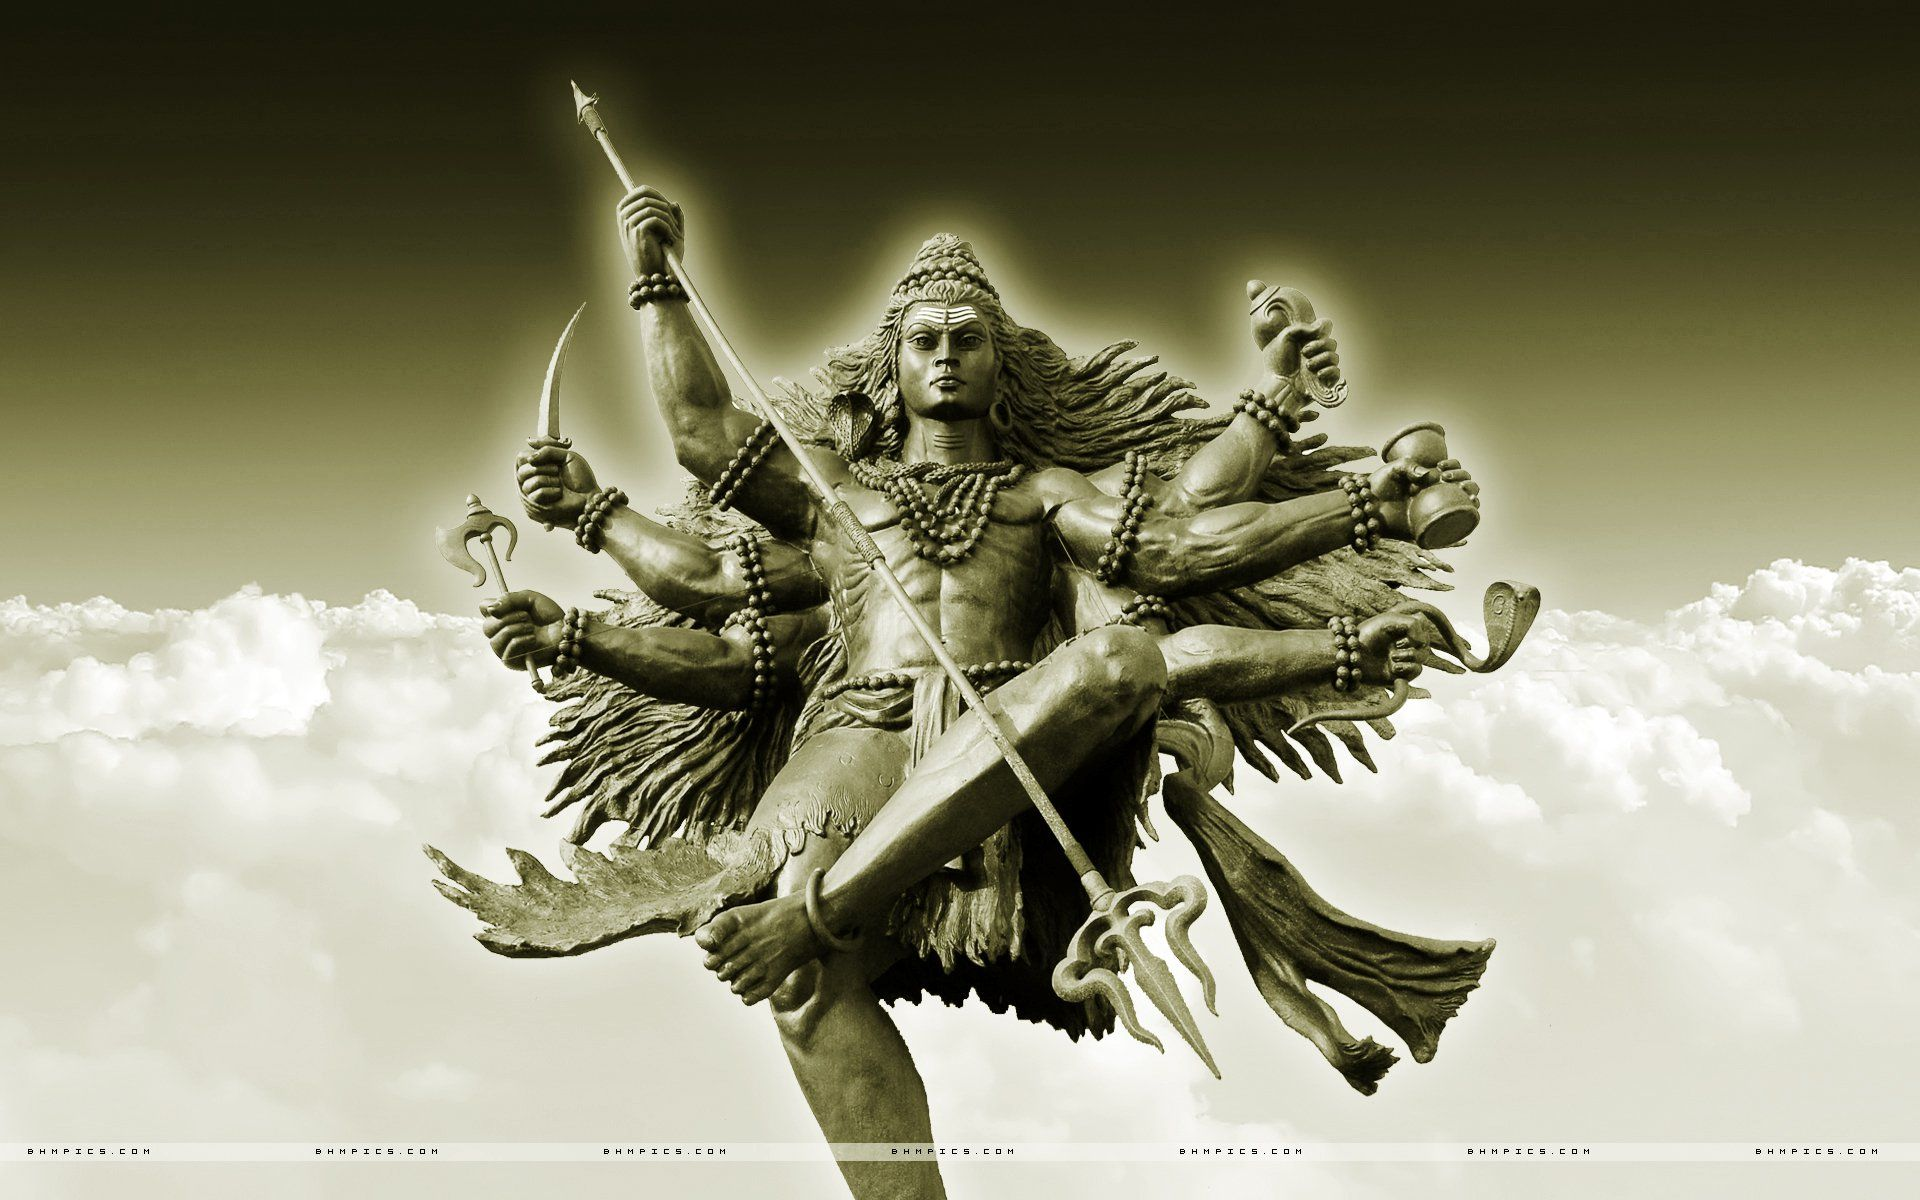 Wallpapers Lord Shiva Angry Photos Hd Kaal Bhairav 4: Shiva Virbhadra Wallpaper : PC Wallpapers